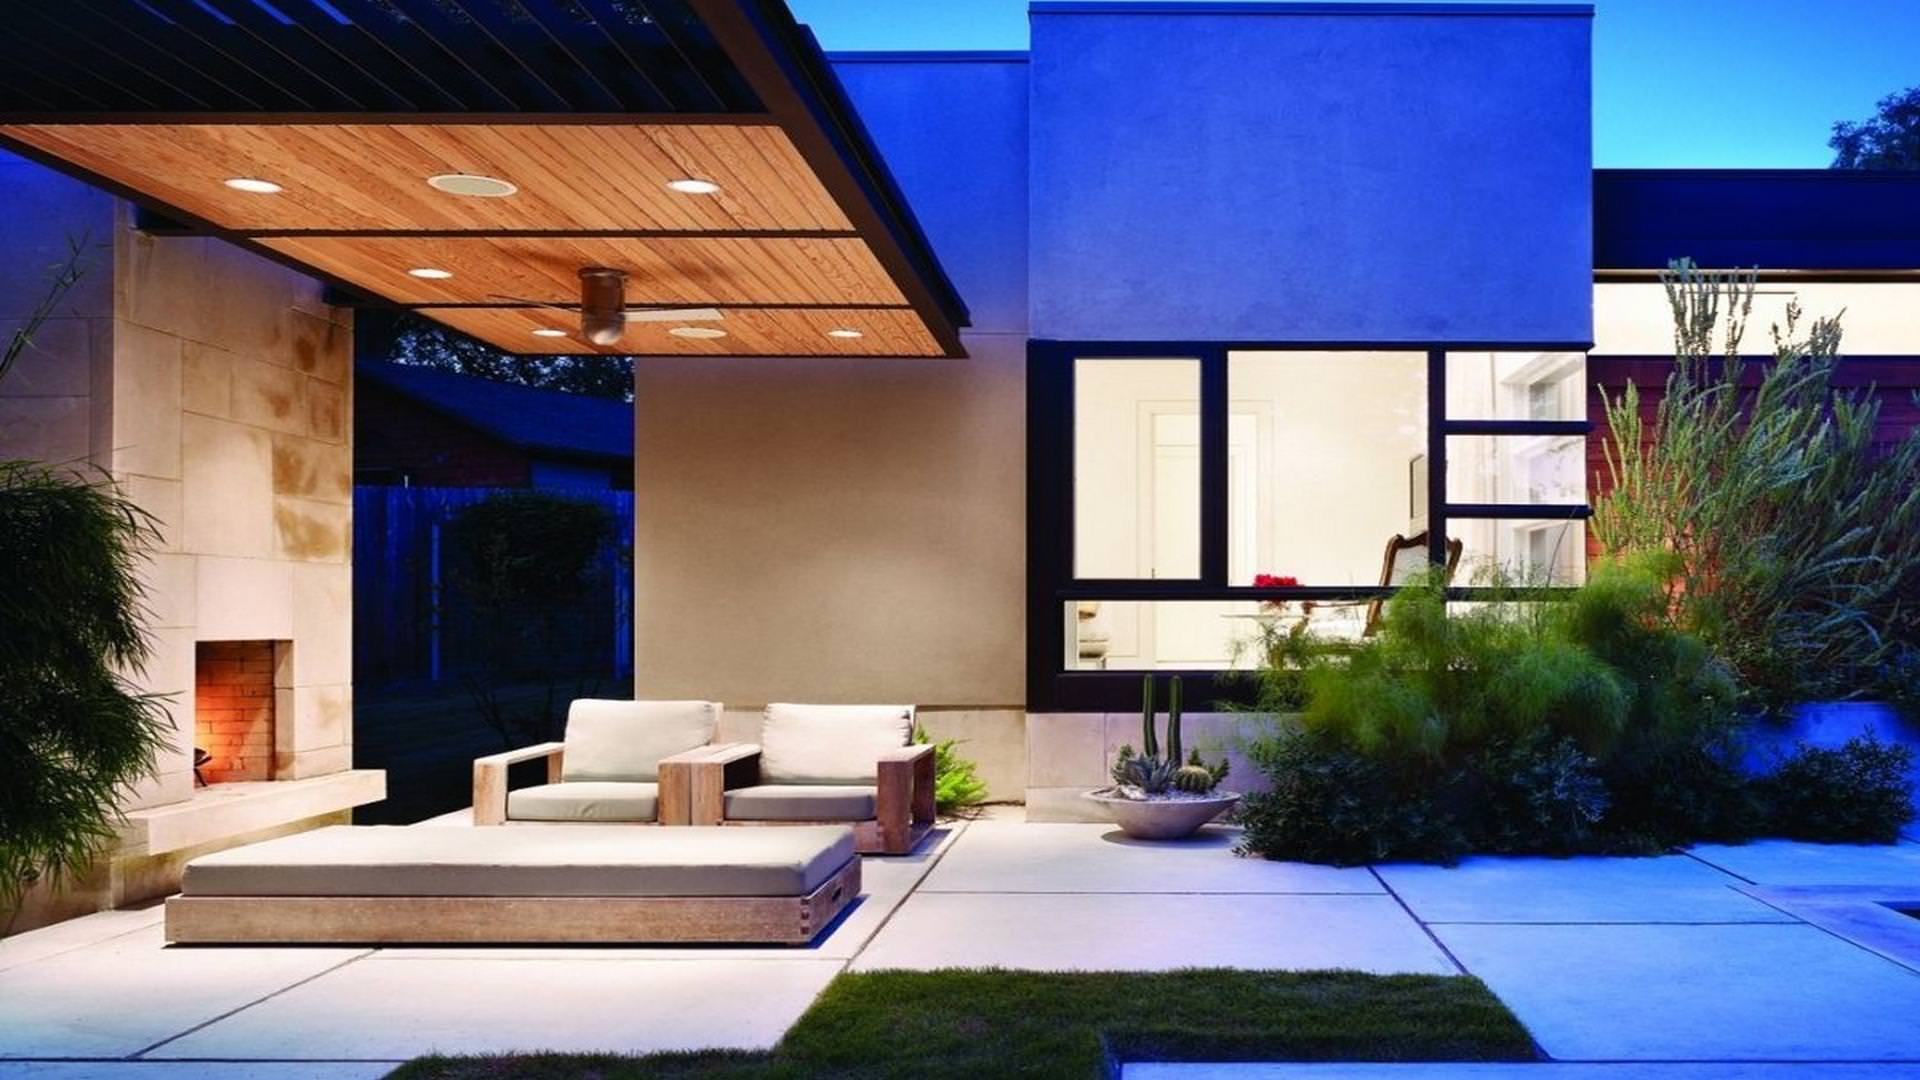 Amazing 22 Modern Home Designs Decorating Ideas Design Trends Largest Home Design Picture Inspirations Pitcheantrous